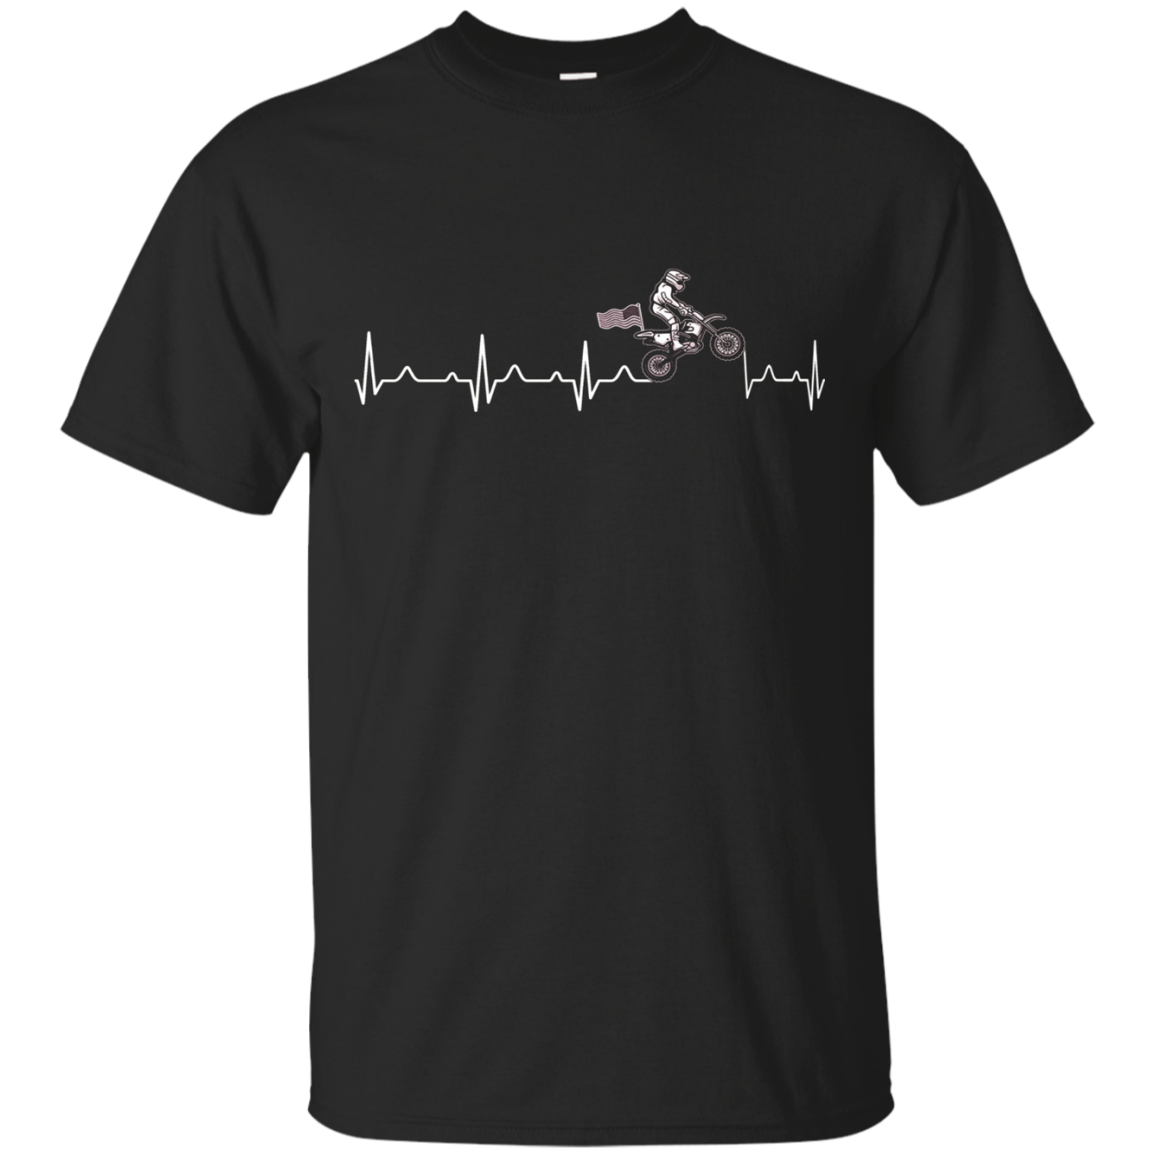 Motocross heart beat with Us flag t-shirt